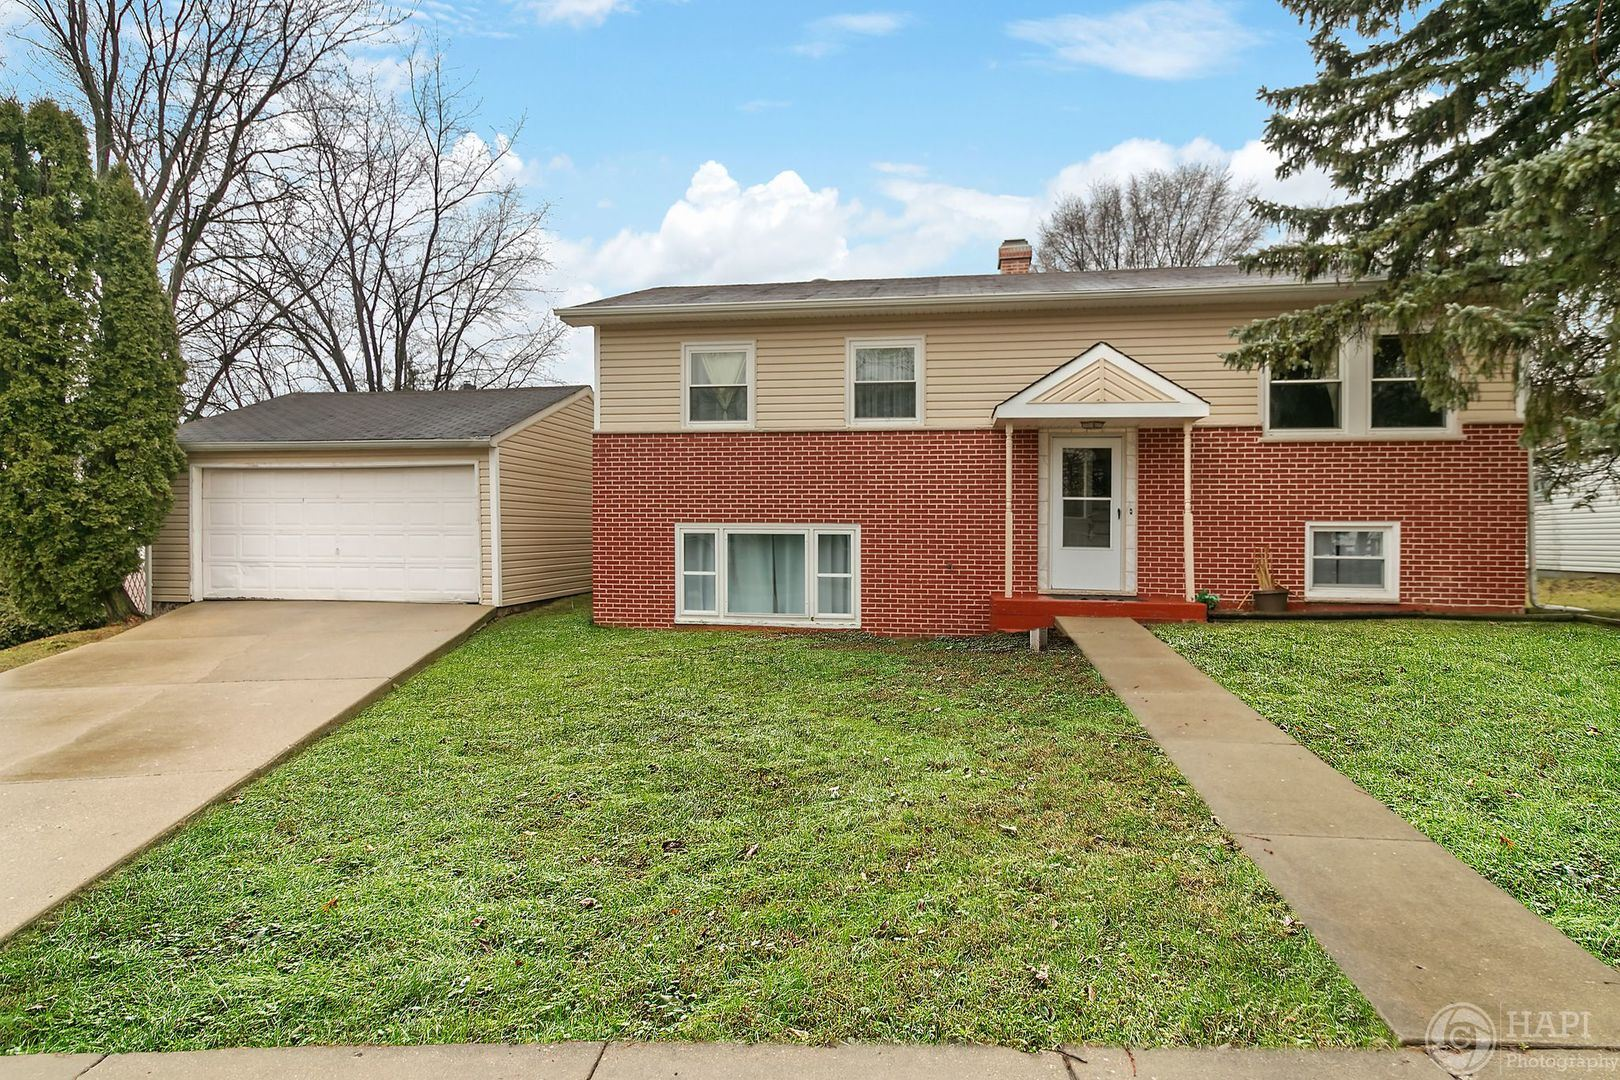 19529 W Cambridge Road, Mundelein, IL 60060 - #: 10675543